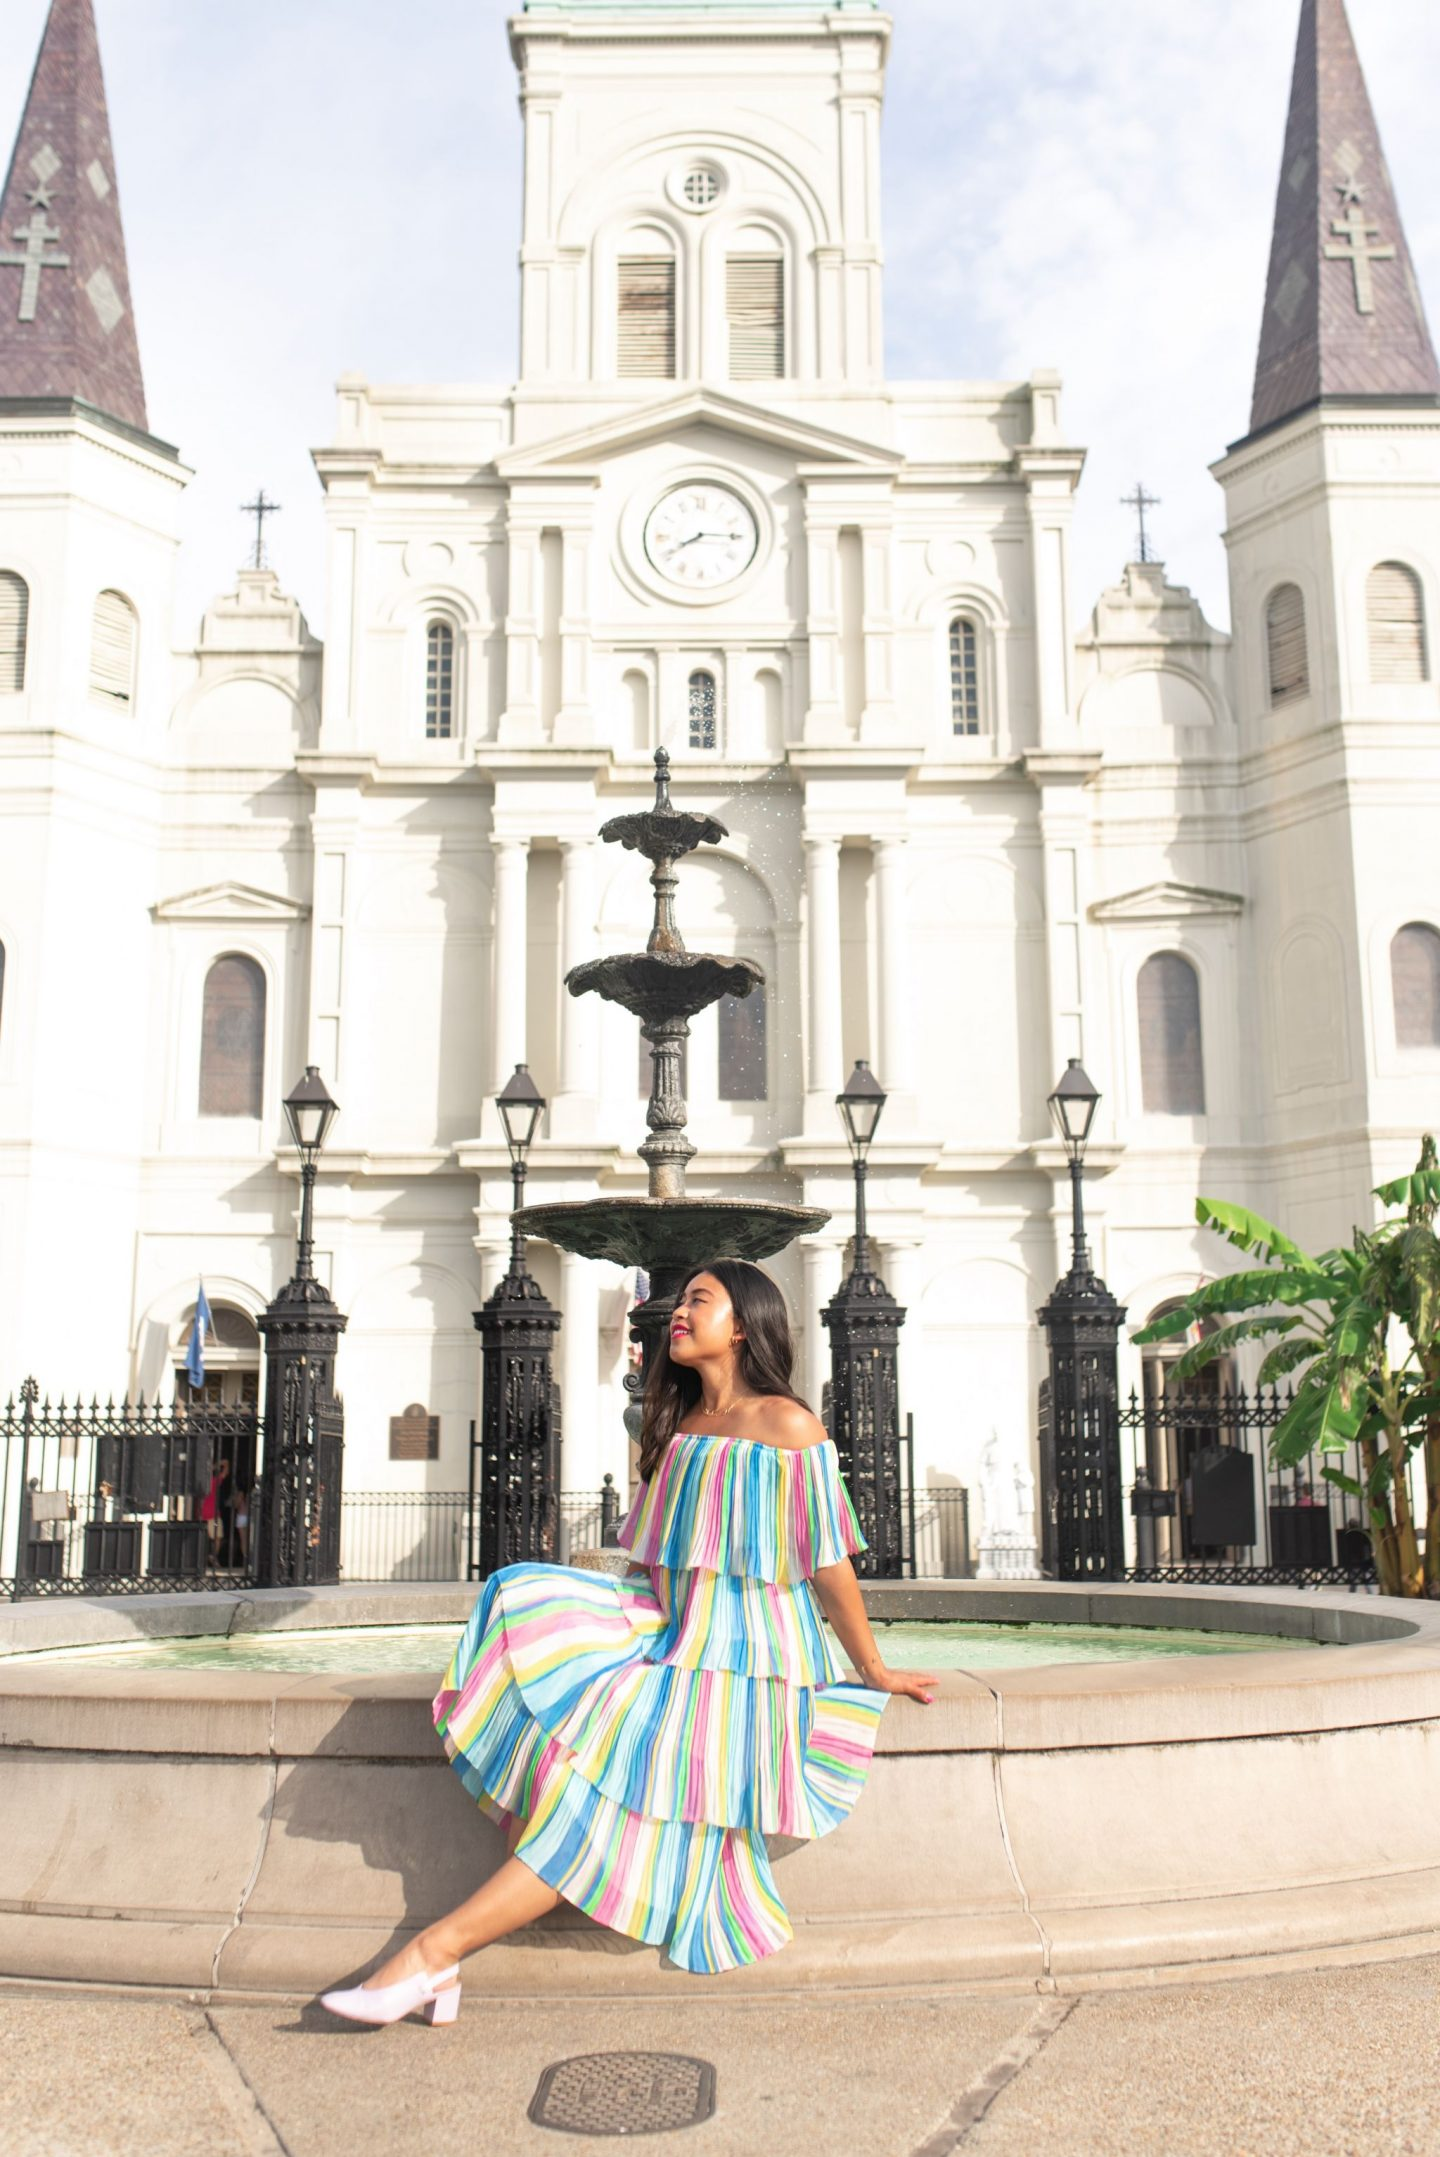 jackson square - Top photography spots in the French Quarter – photo locations New Orleans - Free places to take photos in New Orleans – best places to take senior photos in New Orleans – New Orleans photo shoot – French quarter photo shoot – best places to take photos in NOLA – photography spots in NOLA